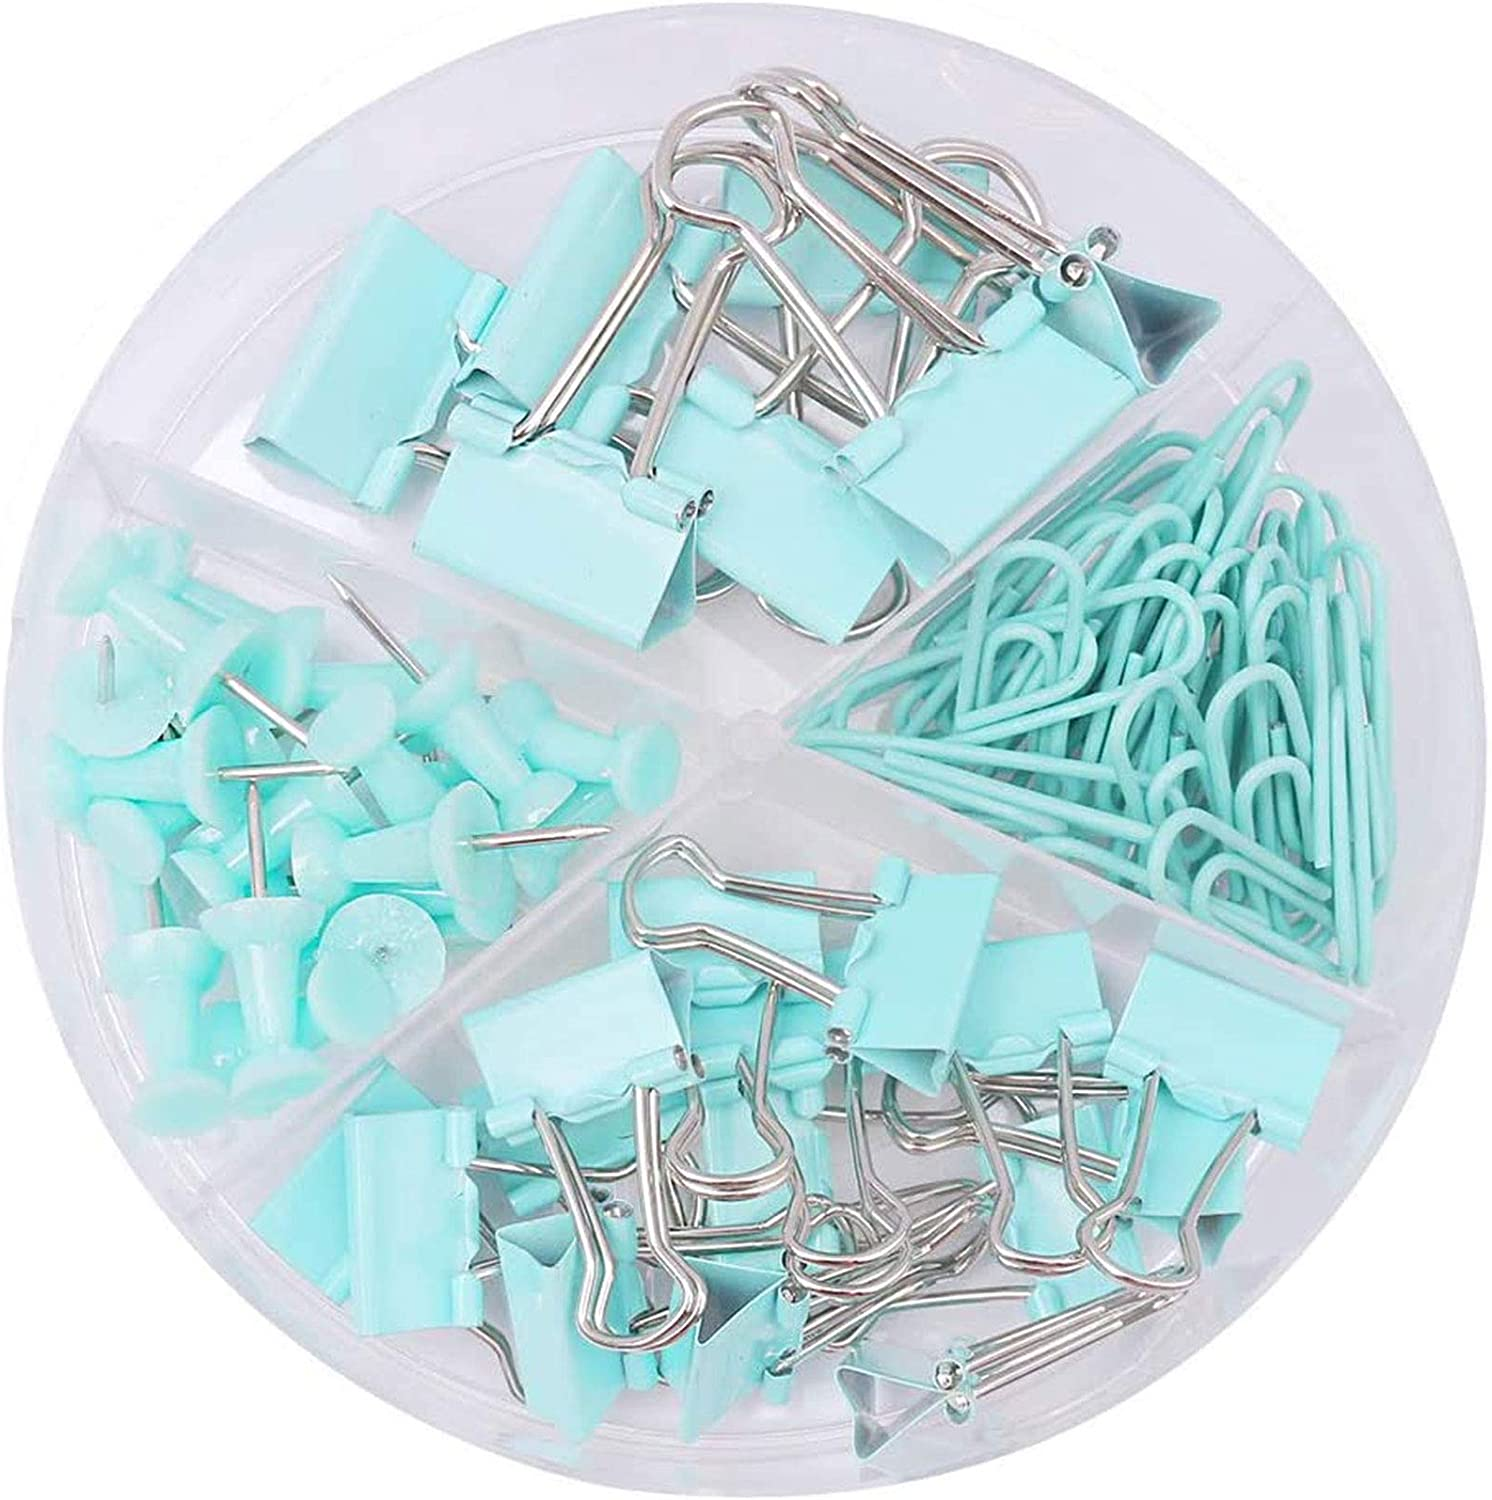 for Office and School Supplies 7pcs Medium Binder Clips, 15pcs Small Binder Clips, 30pcs Paper Clips, 20pcs Push Pins Binder Clips Paper Clips Push Pins Assorted